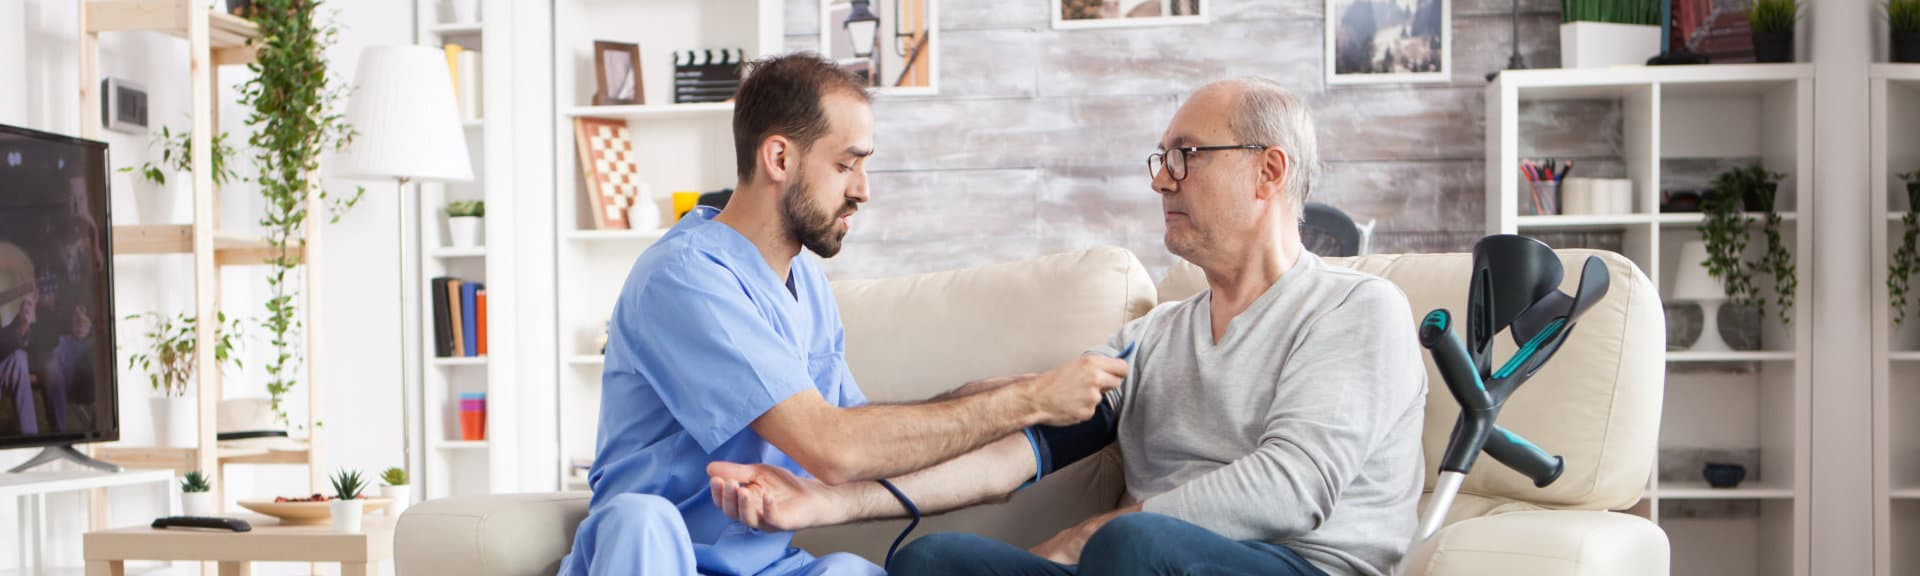 caregiver checking blood pressure of senior man